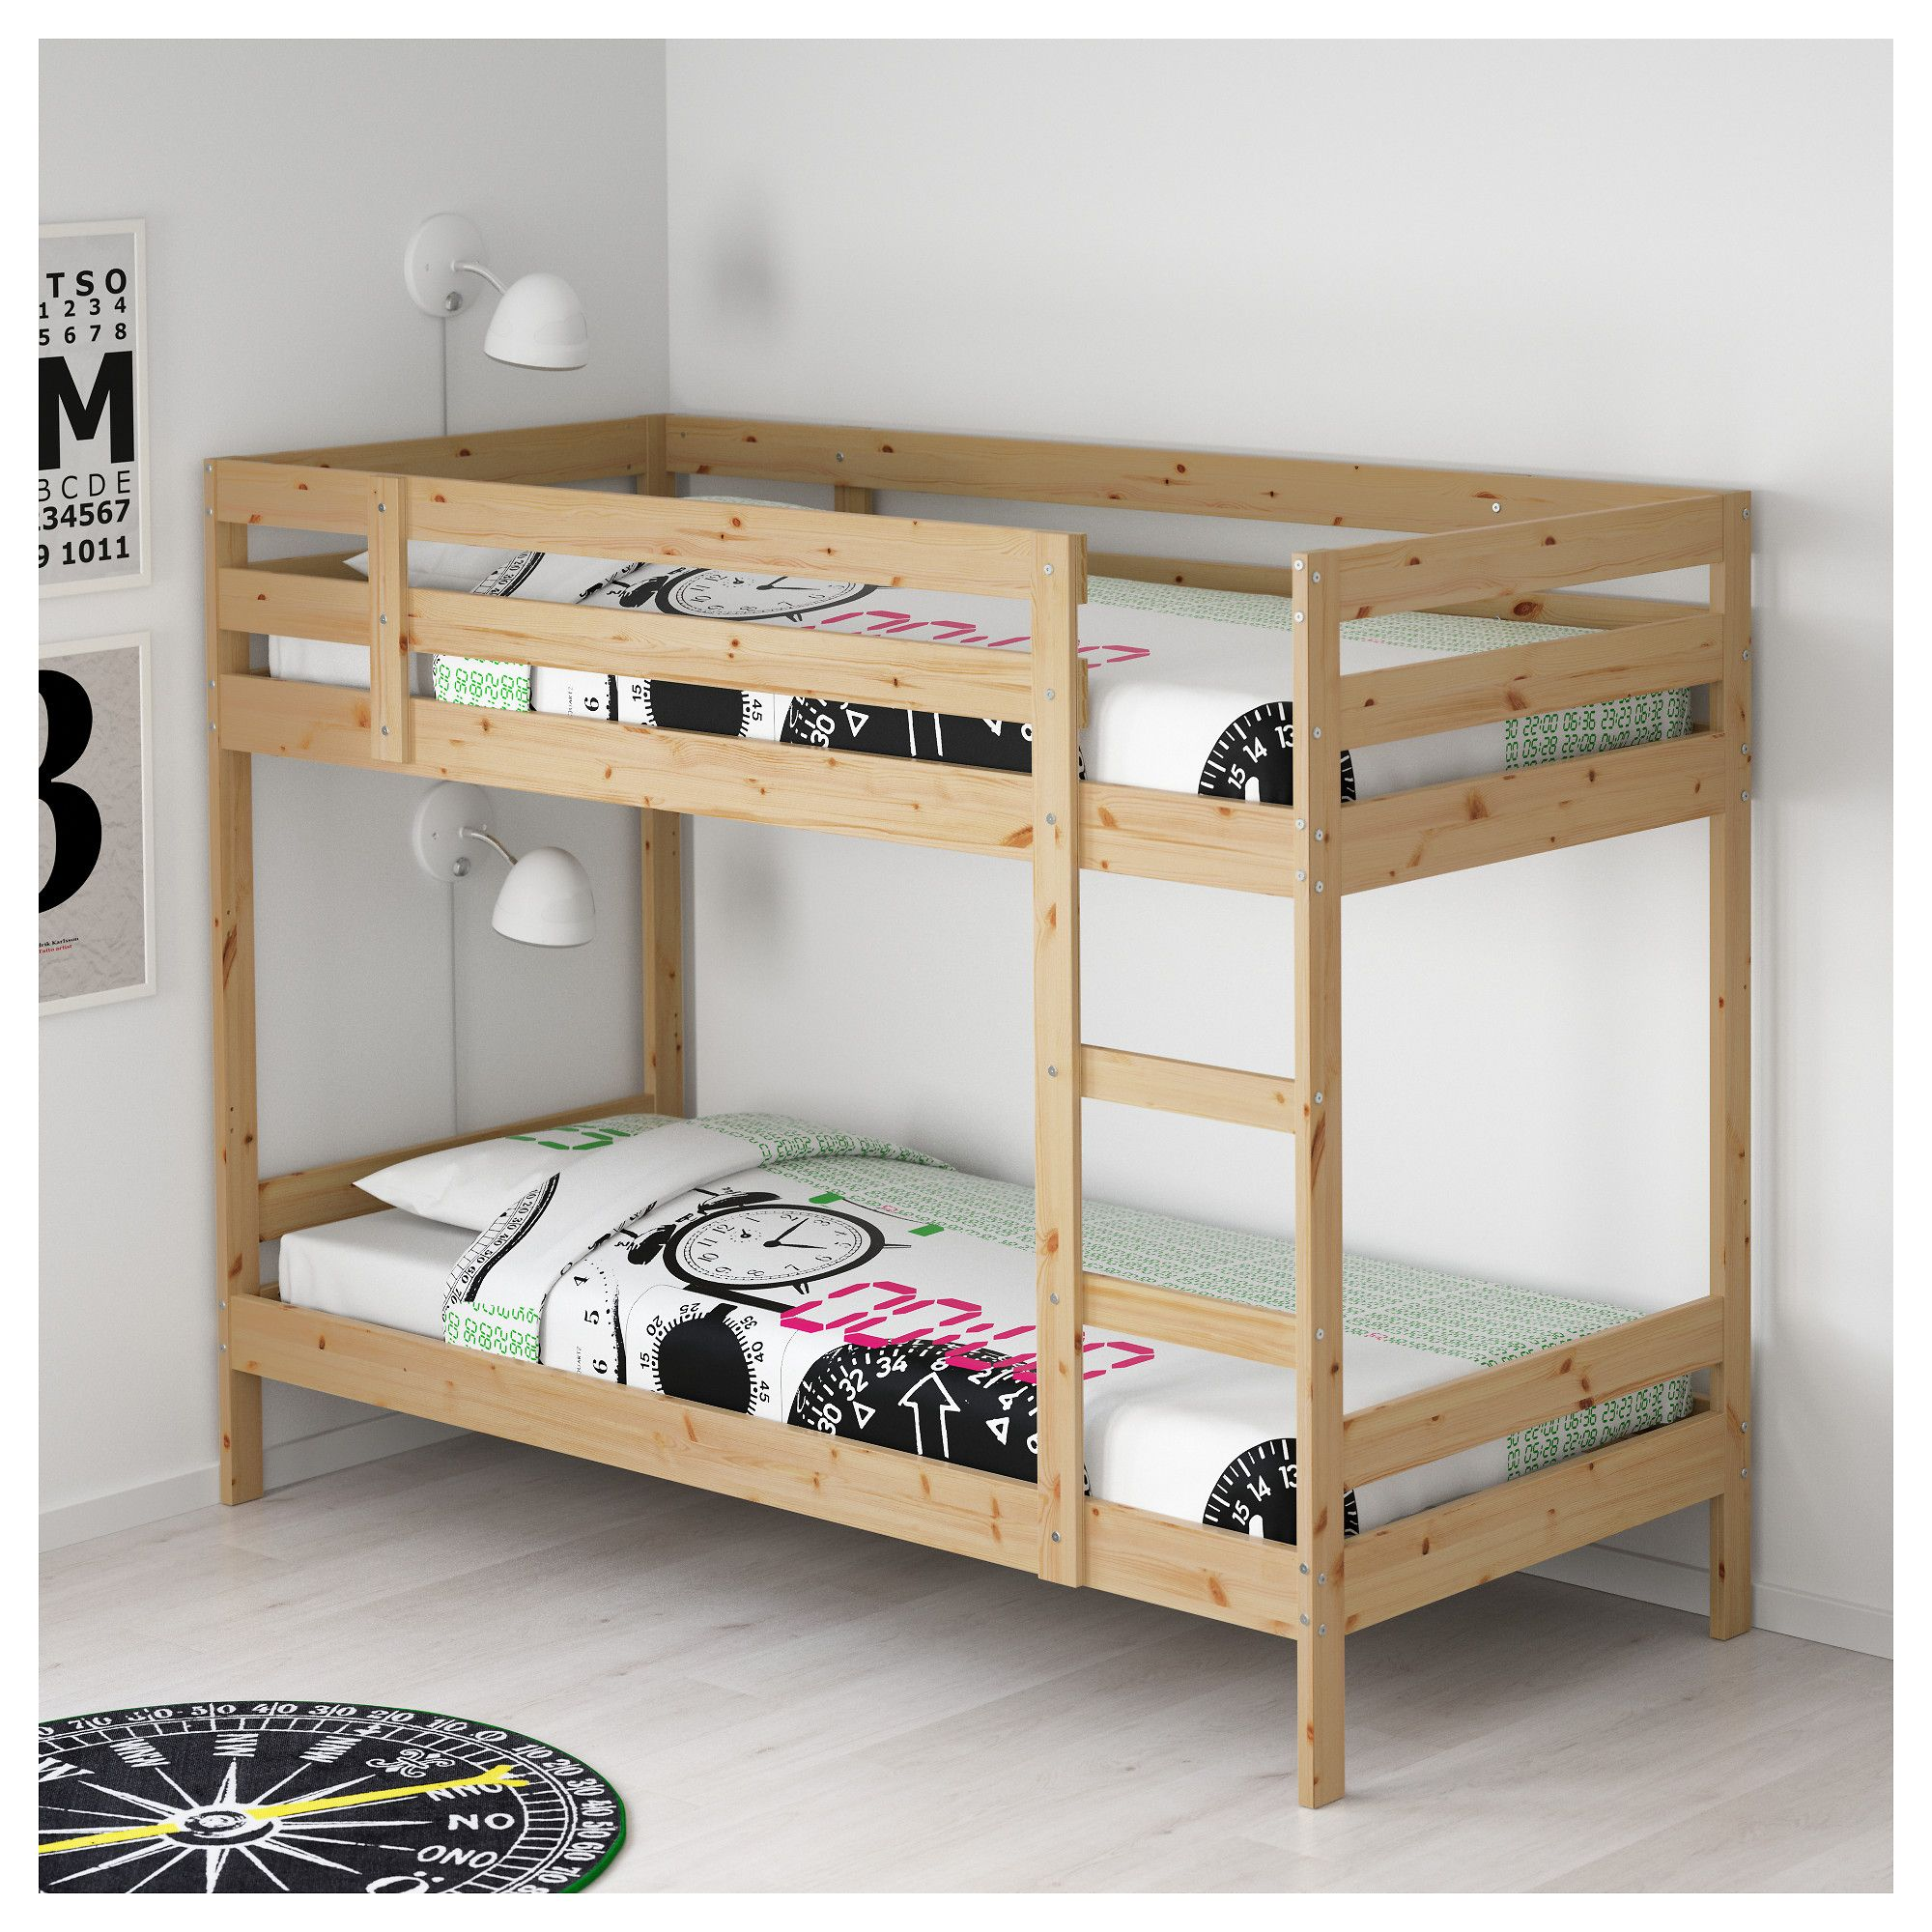 Ikea Mydal Bunk Bed Frame The Ladder Mounts On Right Or Left Side Of